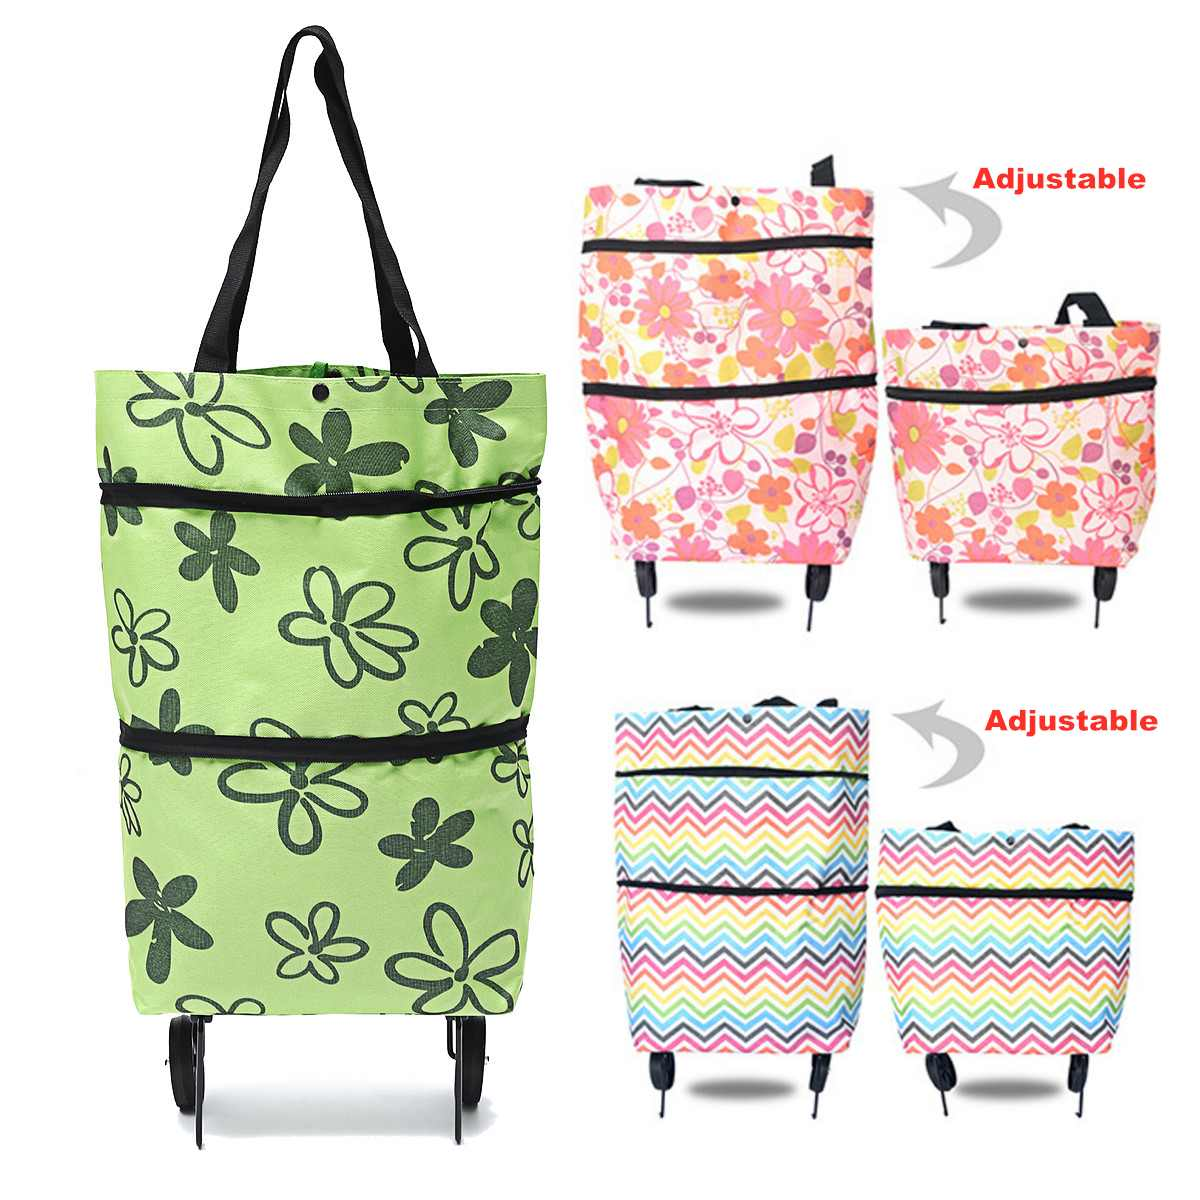 Folding Shopping Cart Laundry Grocery Trolley Handcart Market Bag Portable Shopping Trolley Bag With Wheels Rolling Oxford(China)